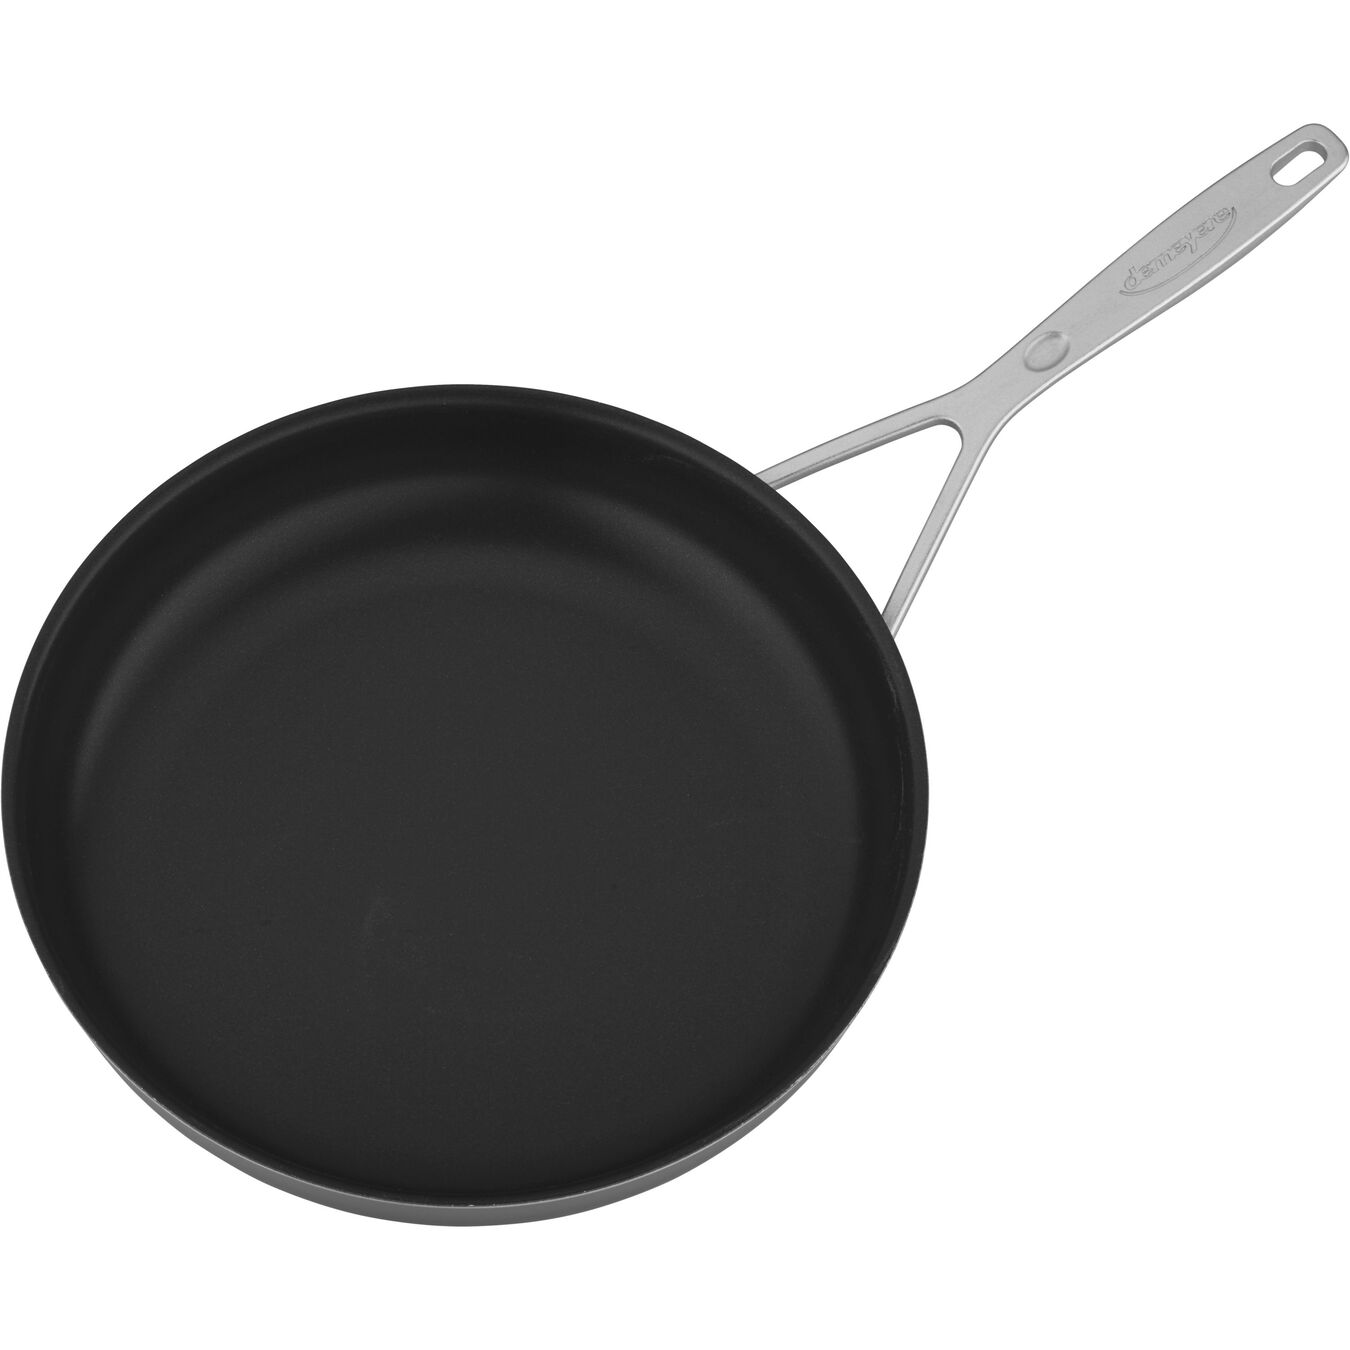 11-inch, 18/10 Stainless Steel, Non-stick, PTFE, Frying pan,,large 4